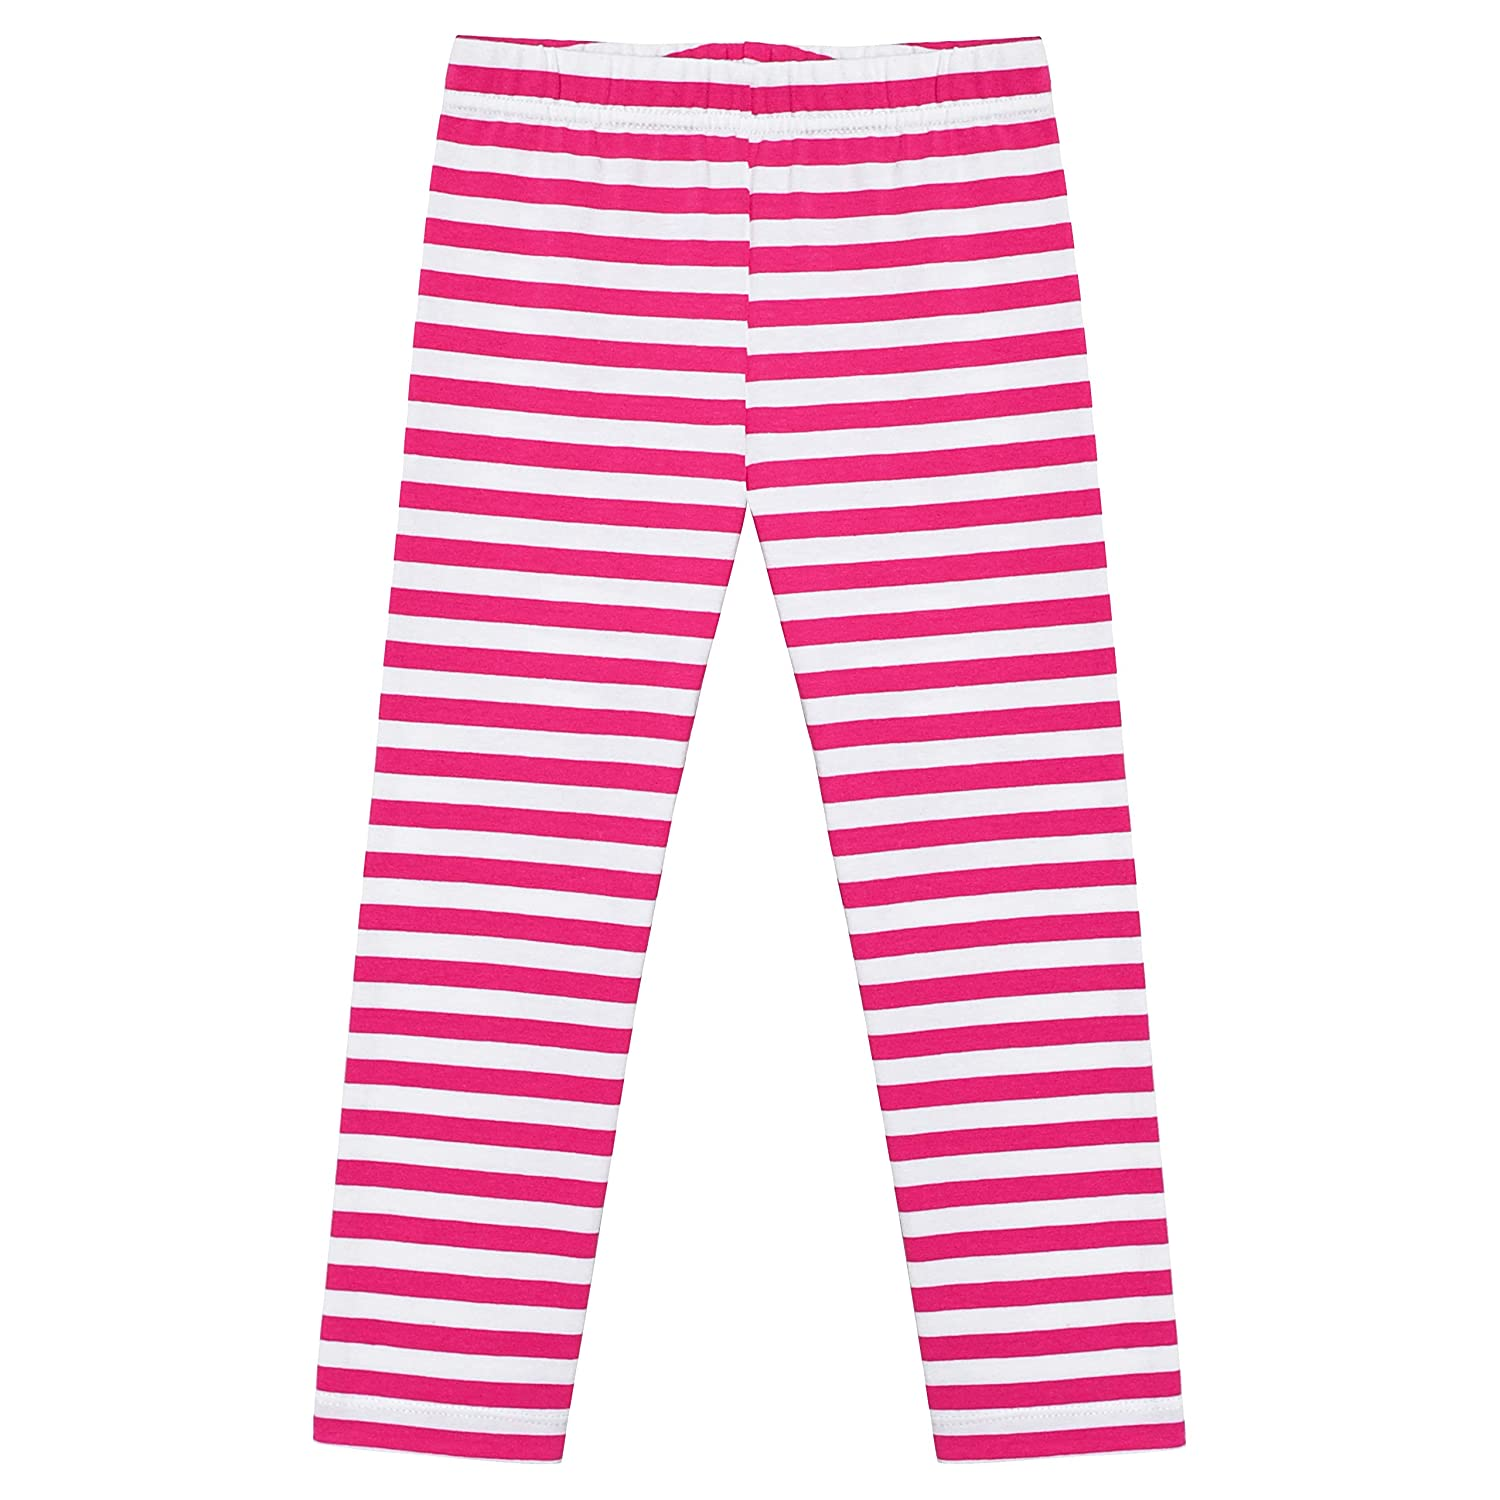 Sunny Fashion Girls Pants 3-Pack Cotton Leggings Lace Stretchy Kids Toddler Age 2-6 Years